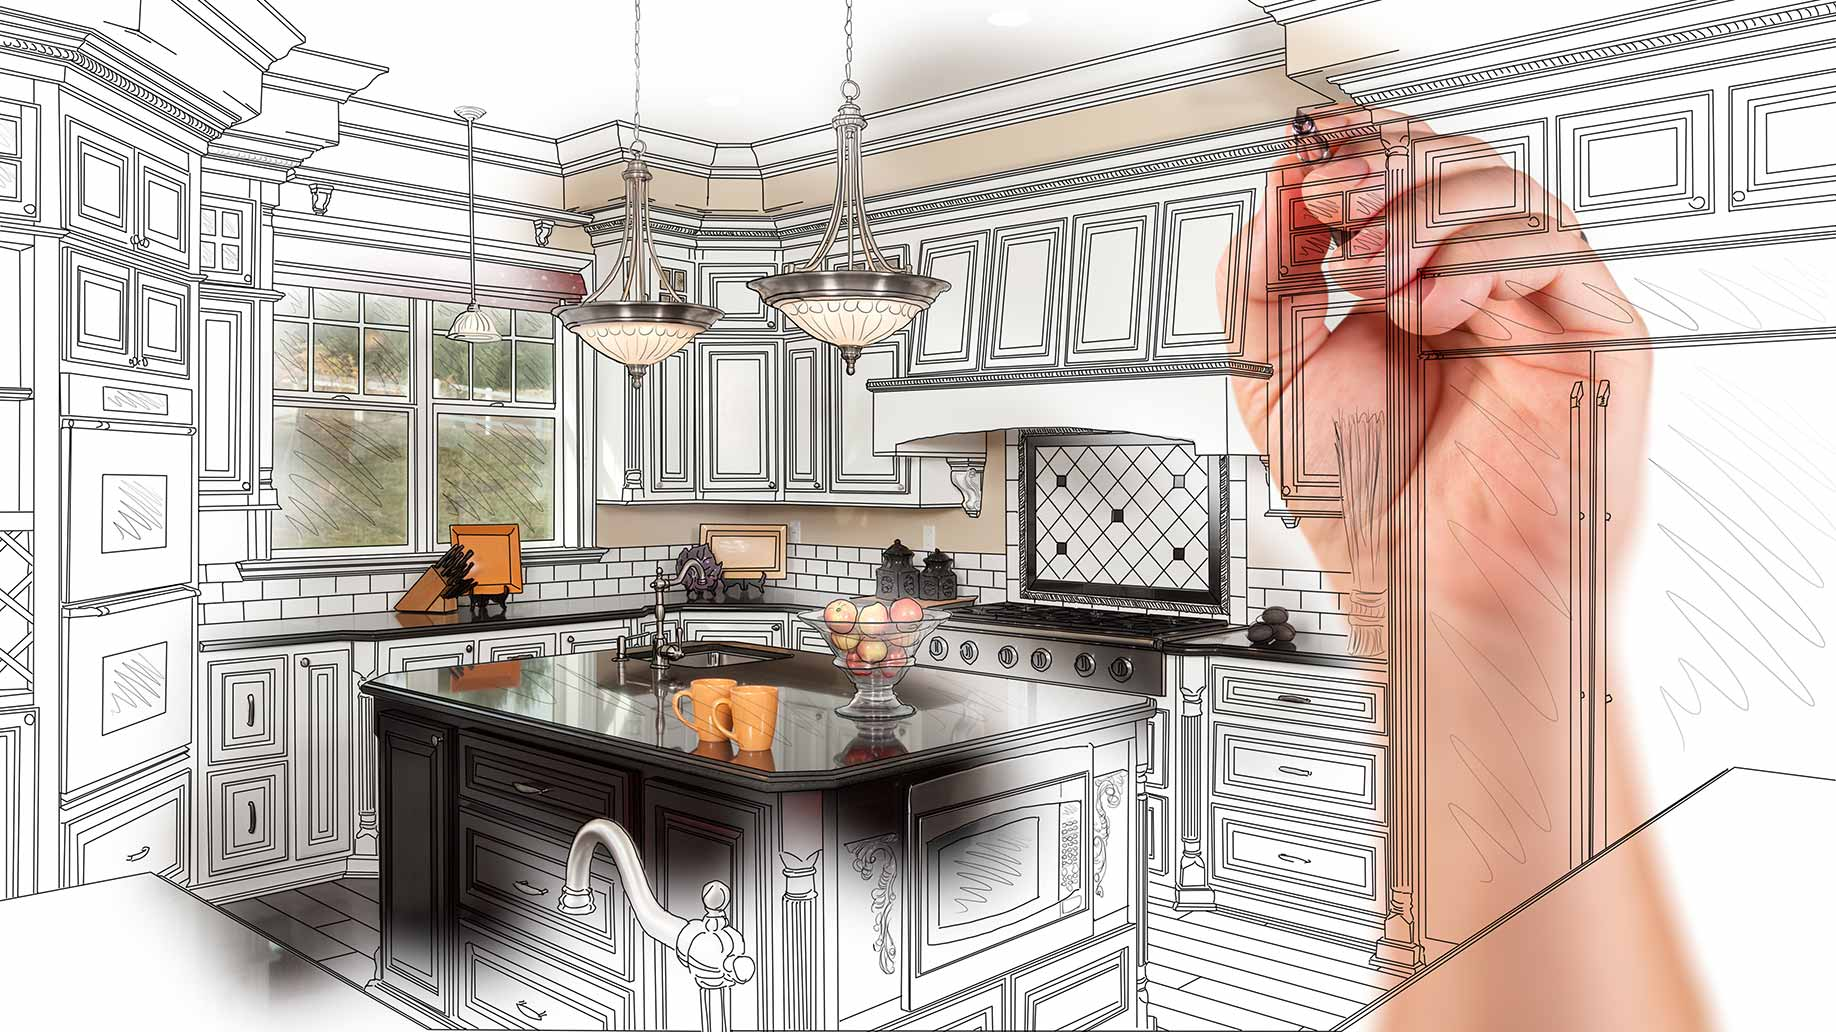 how to remodel your kitchen on a budget - costs & design ideas